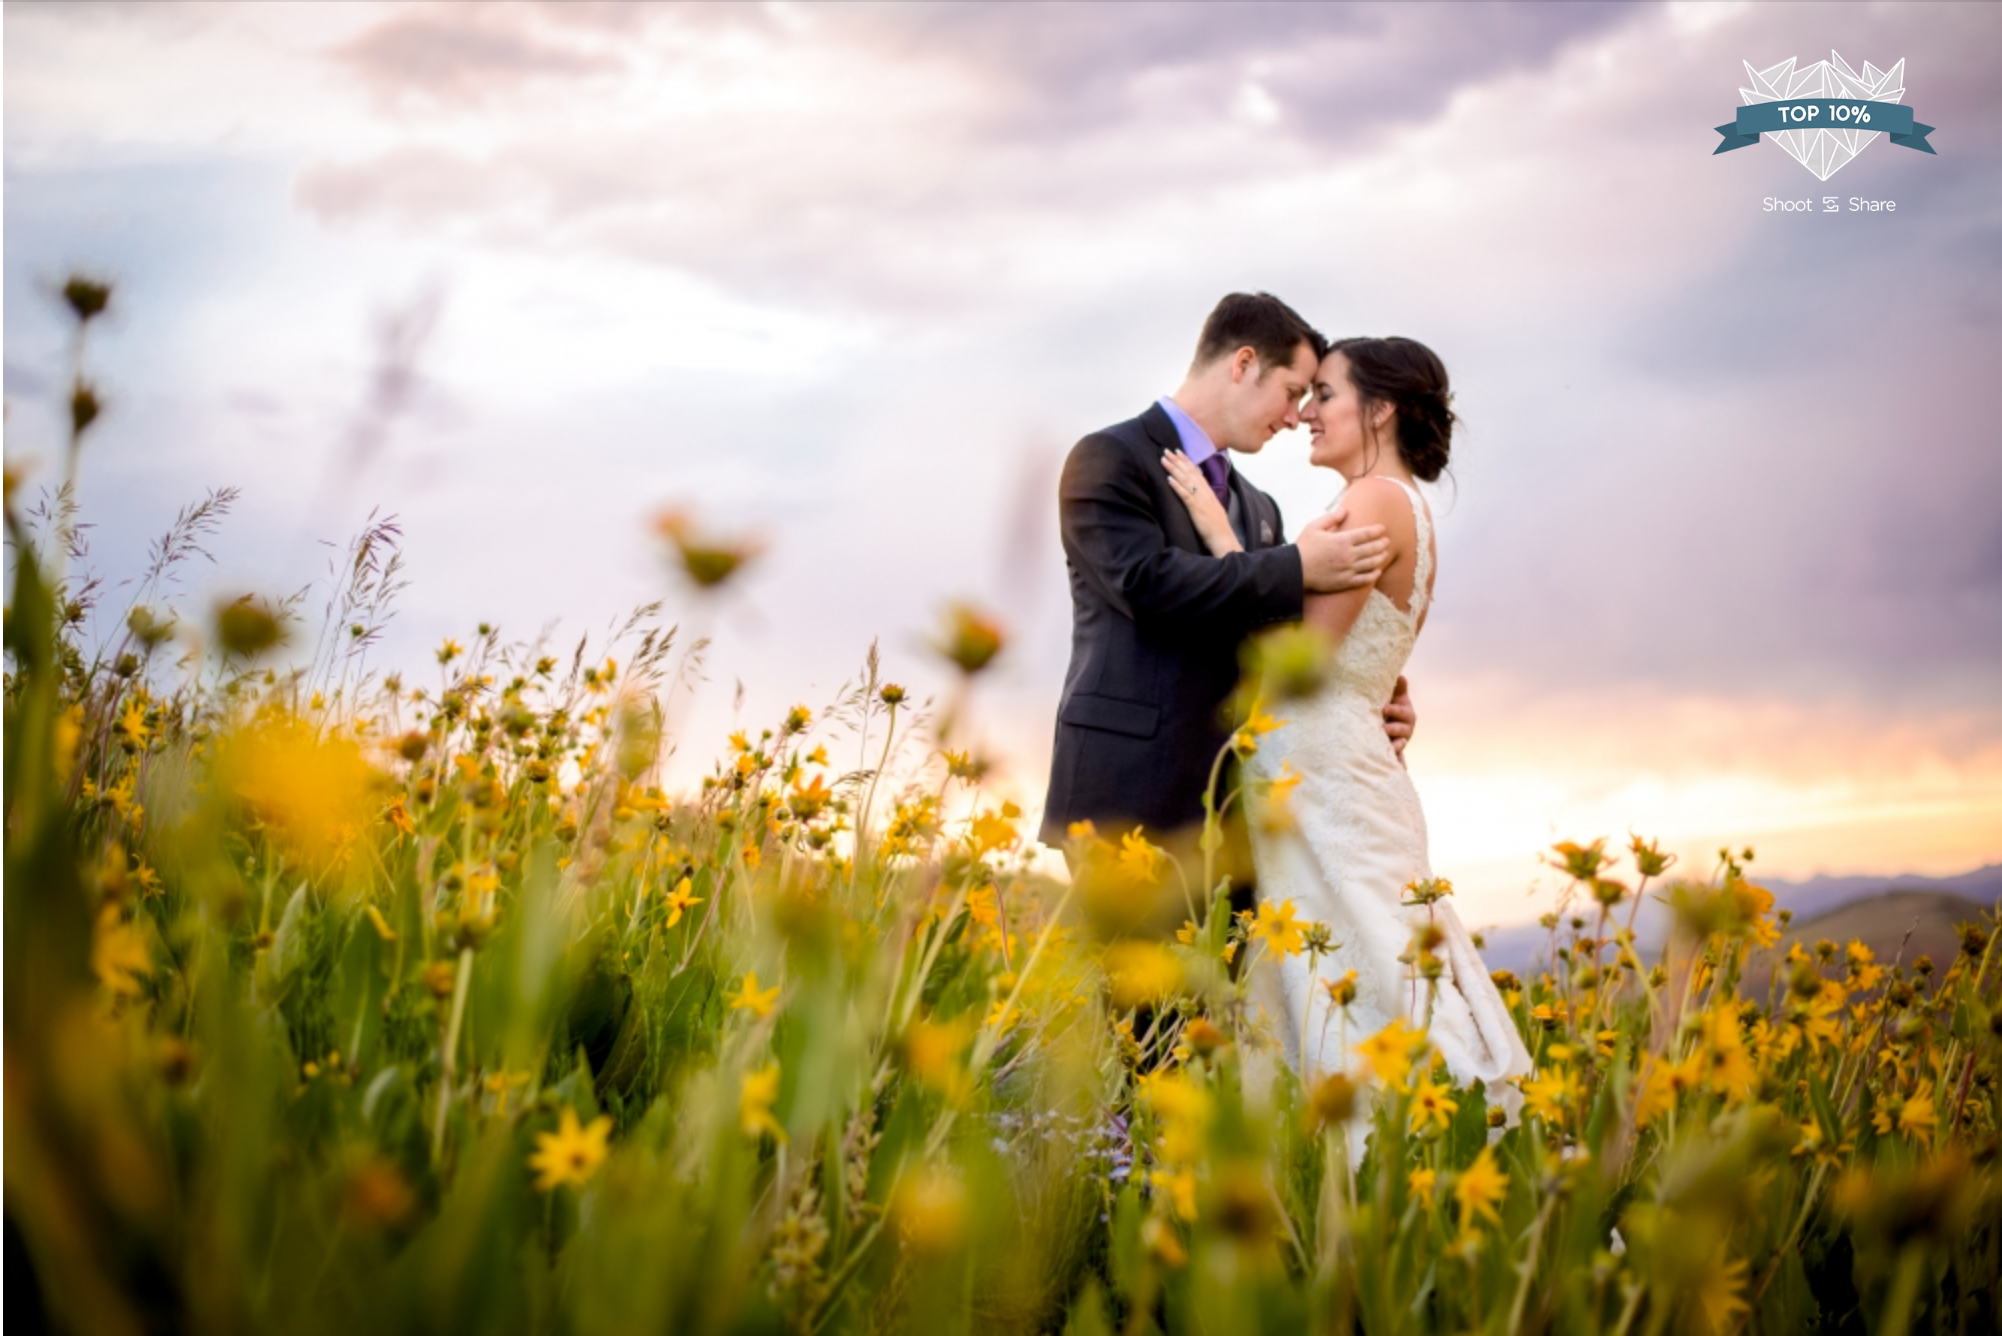 Granby Ranch Wedding - The Wedding Couple Category - 1,522/ 35,527